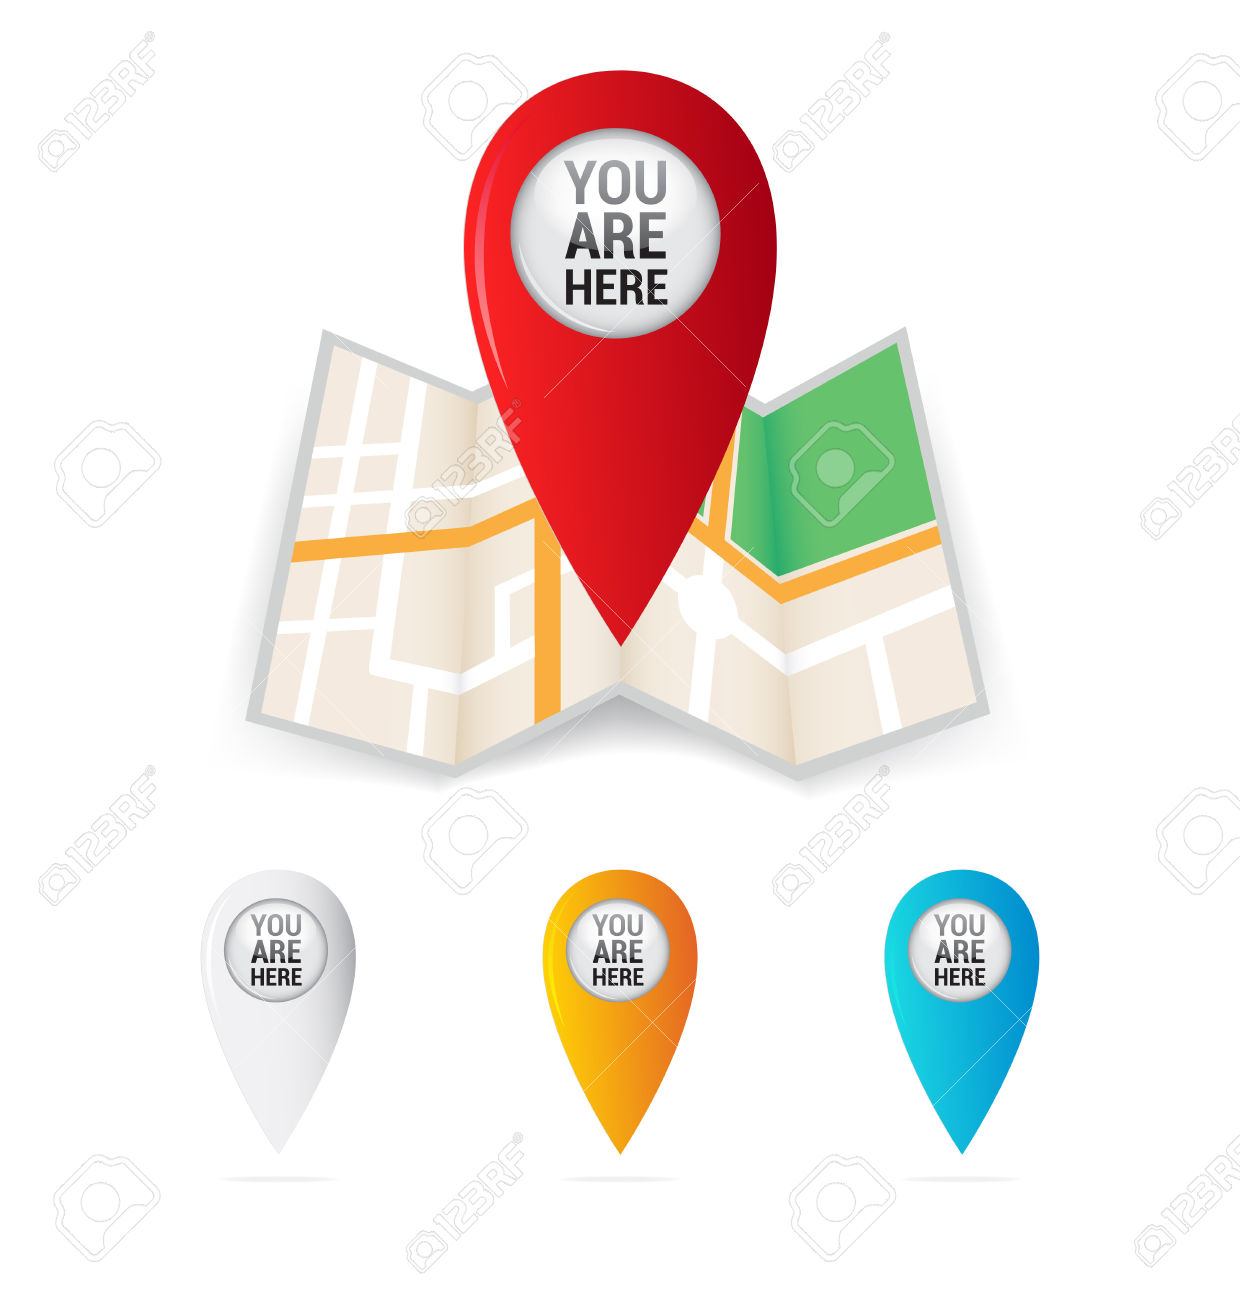 You Are Here Map Locator Royalty Free Cliparts, Vectors, And Stock.